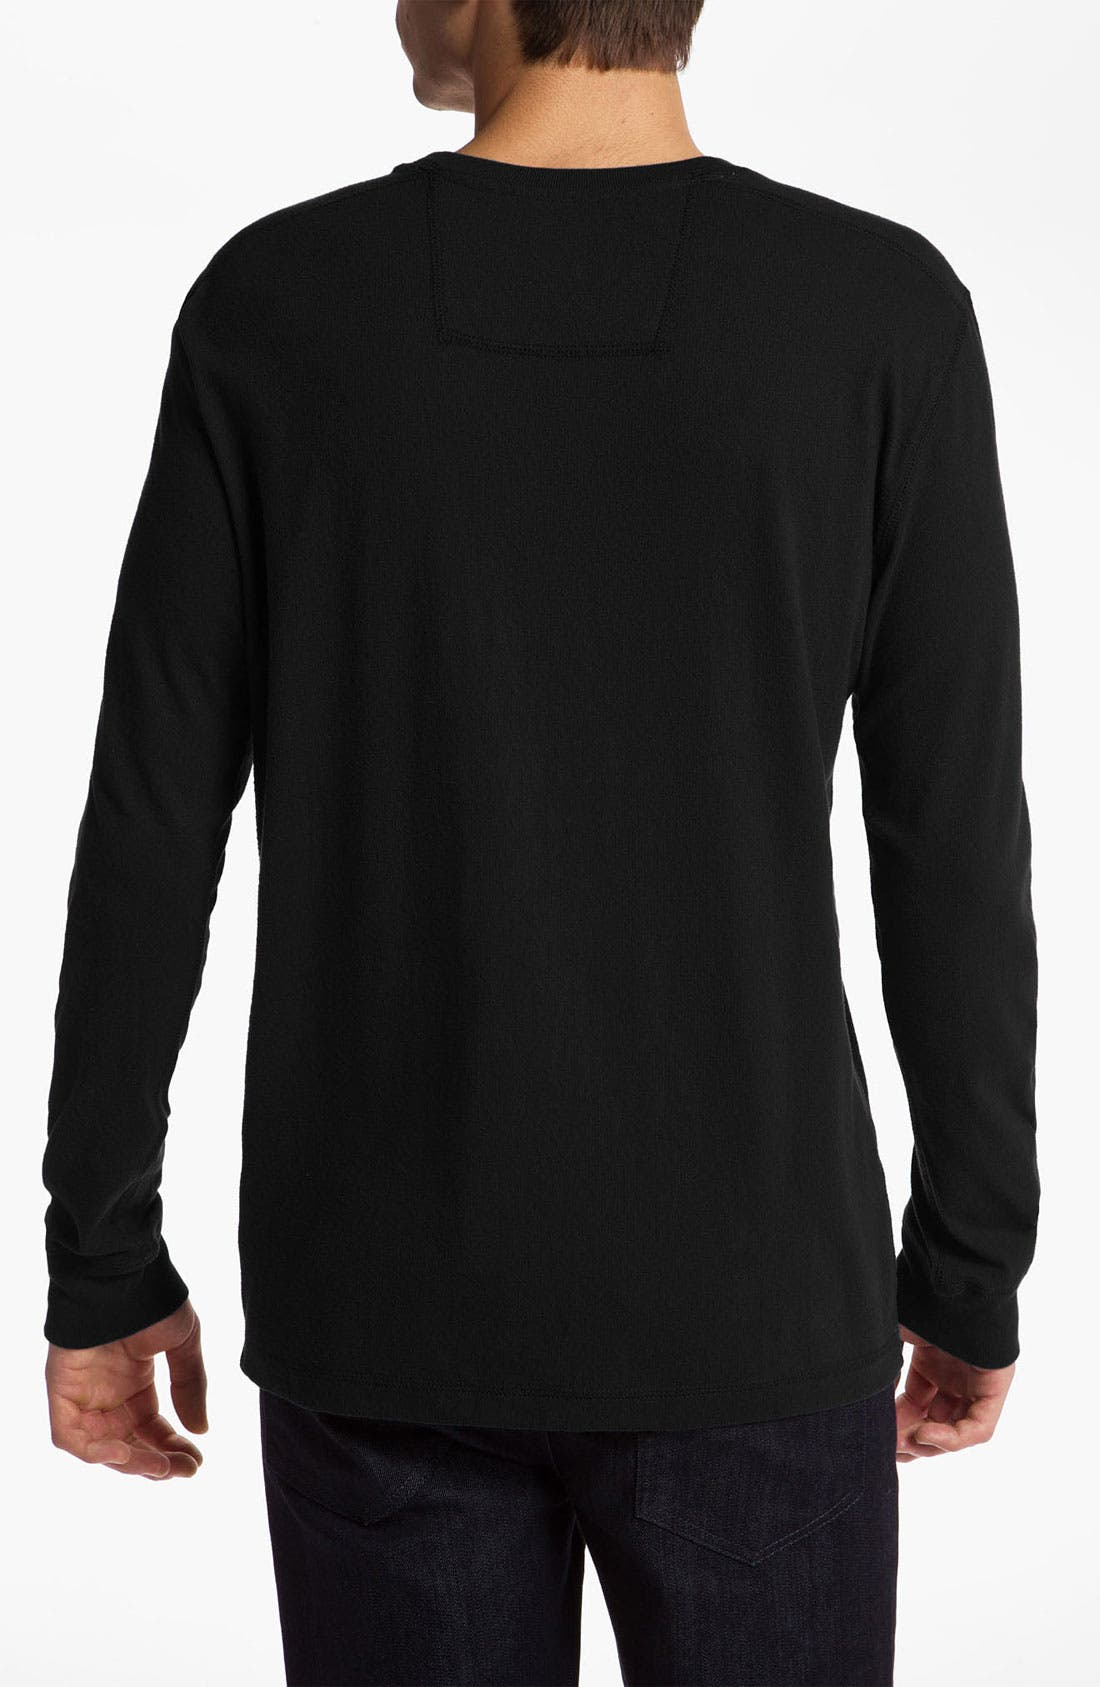 Alternate Image 2  - Quiksilver 'Snit' Long Sleeve Thermal T-Shirt